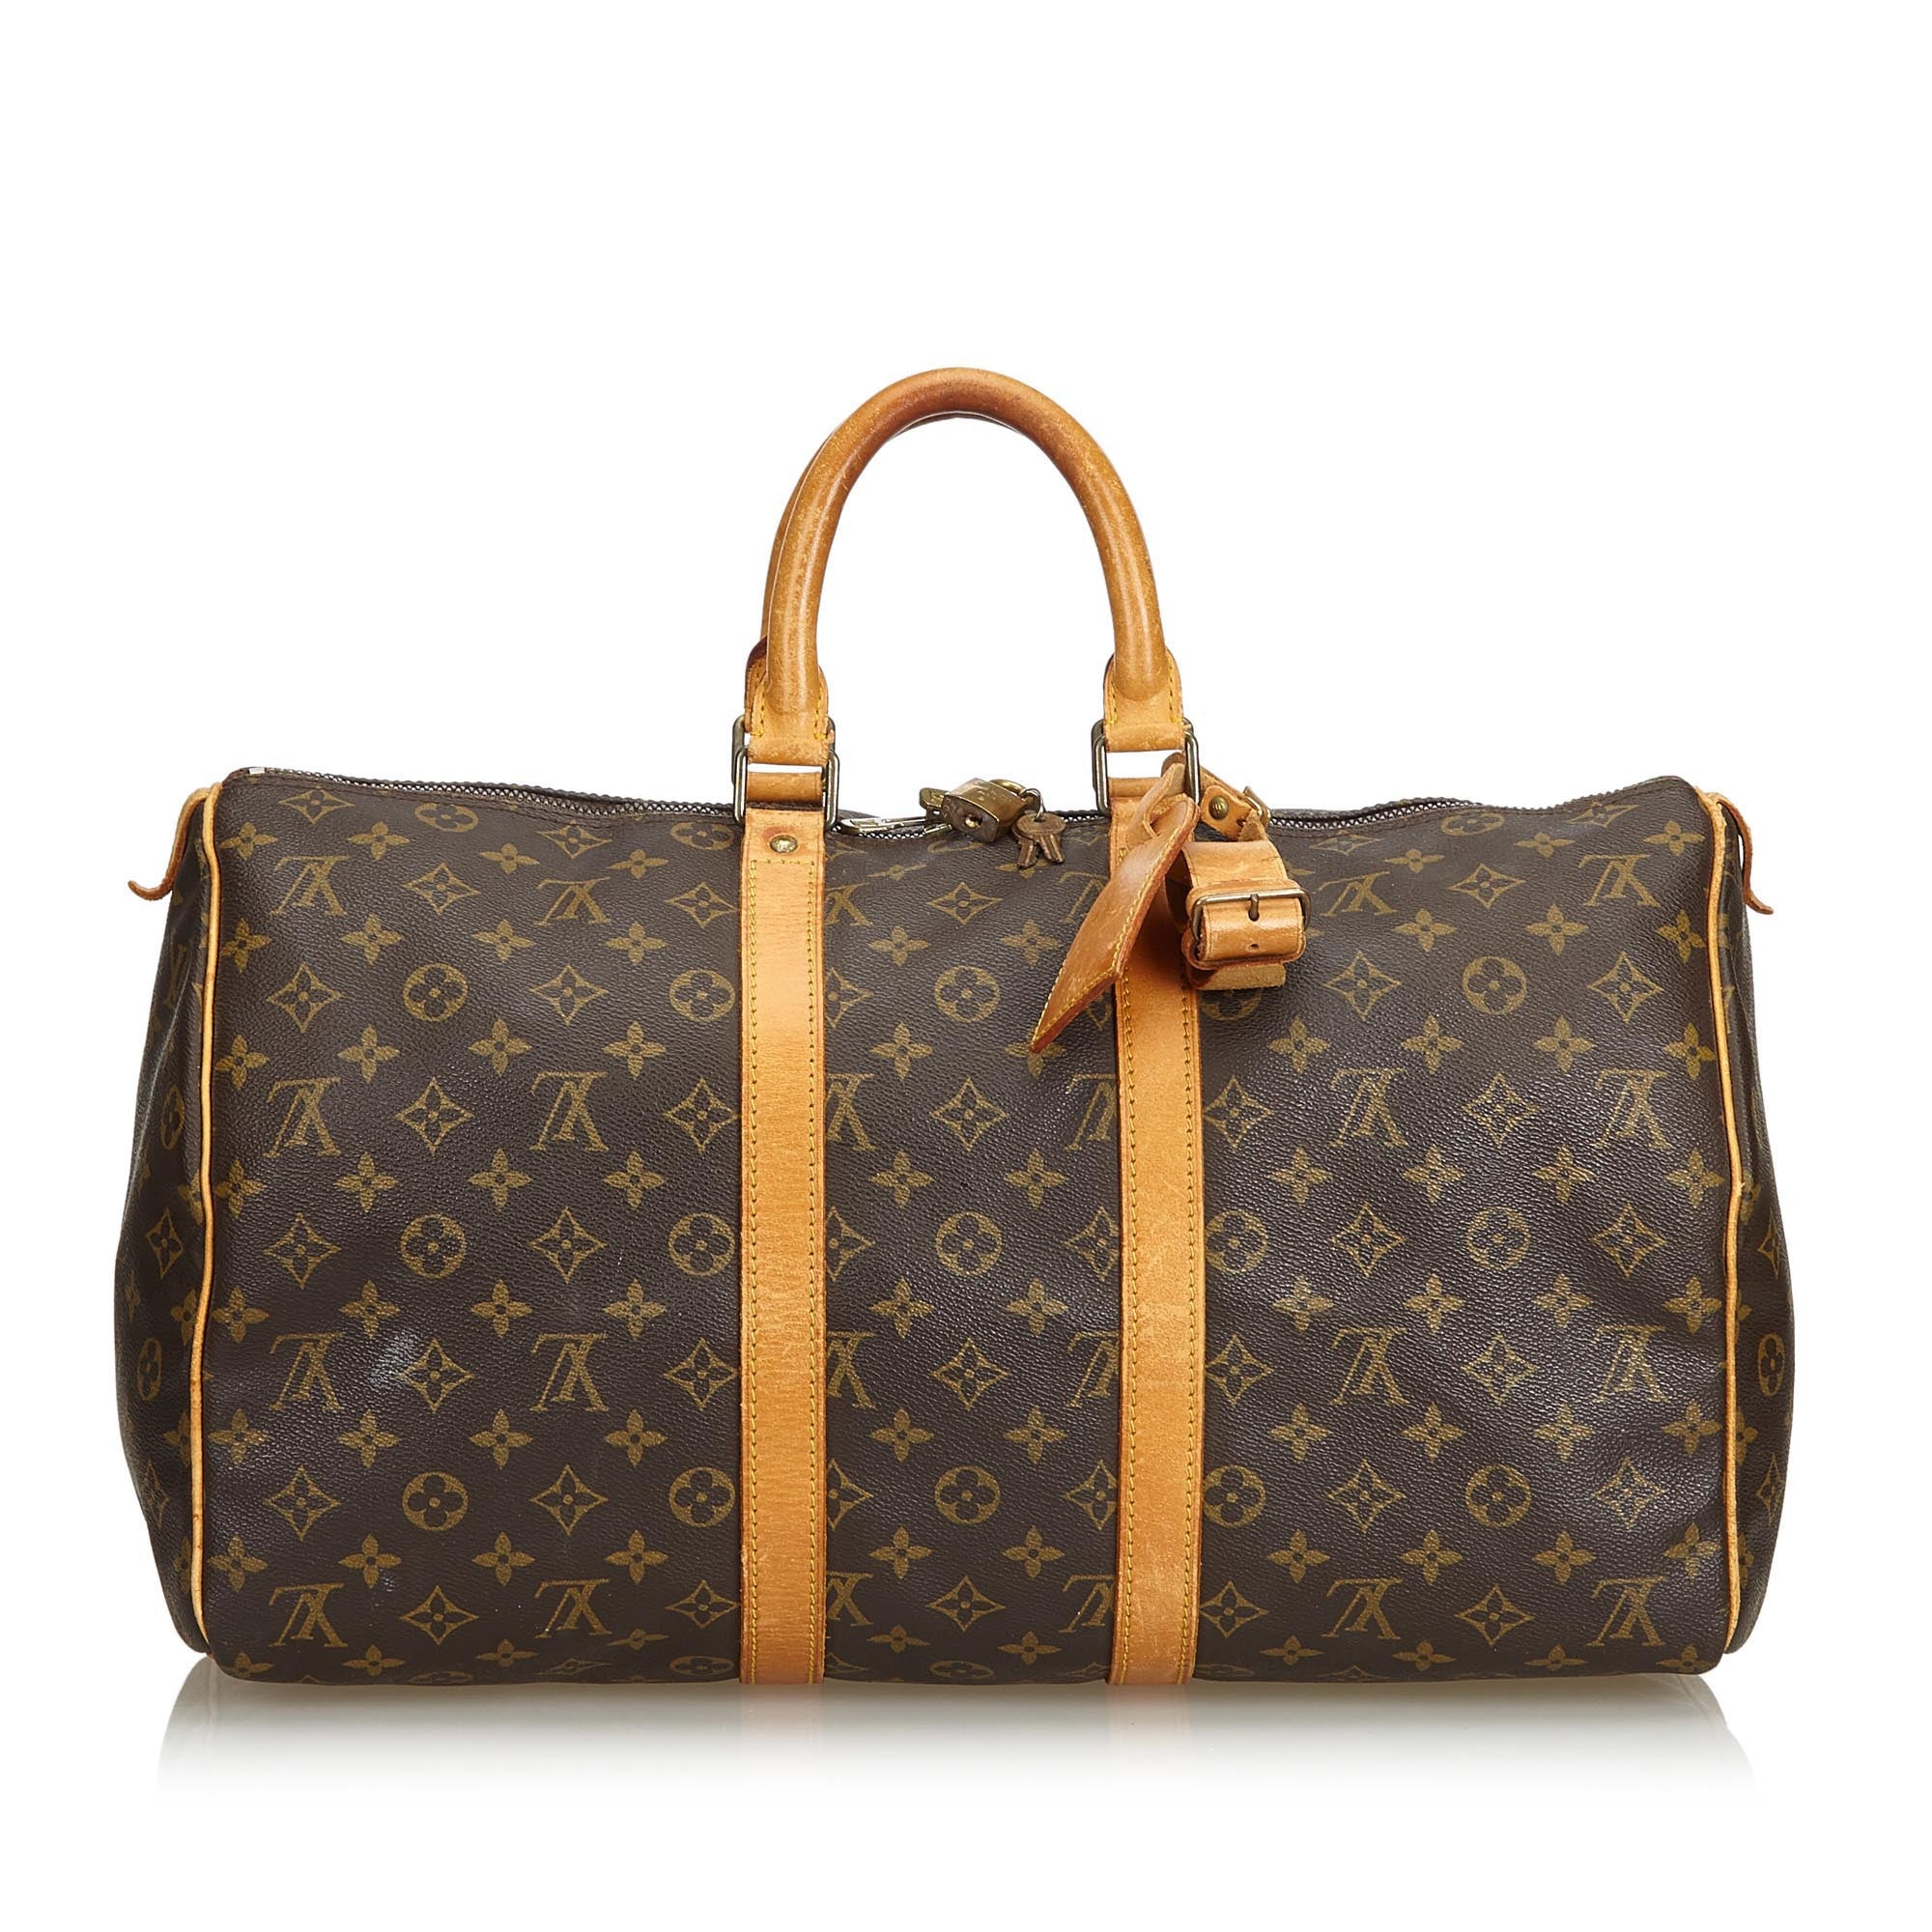 Louis Vuitton Keepall 45 - Iconics Preloved Luxury